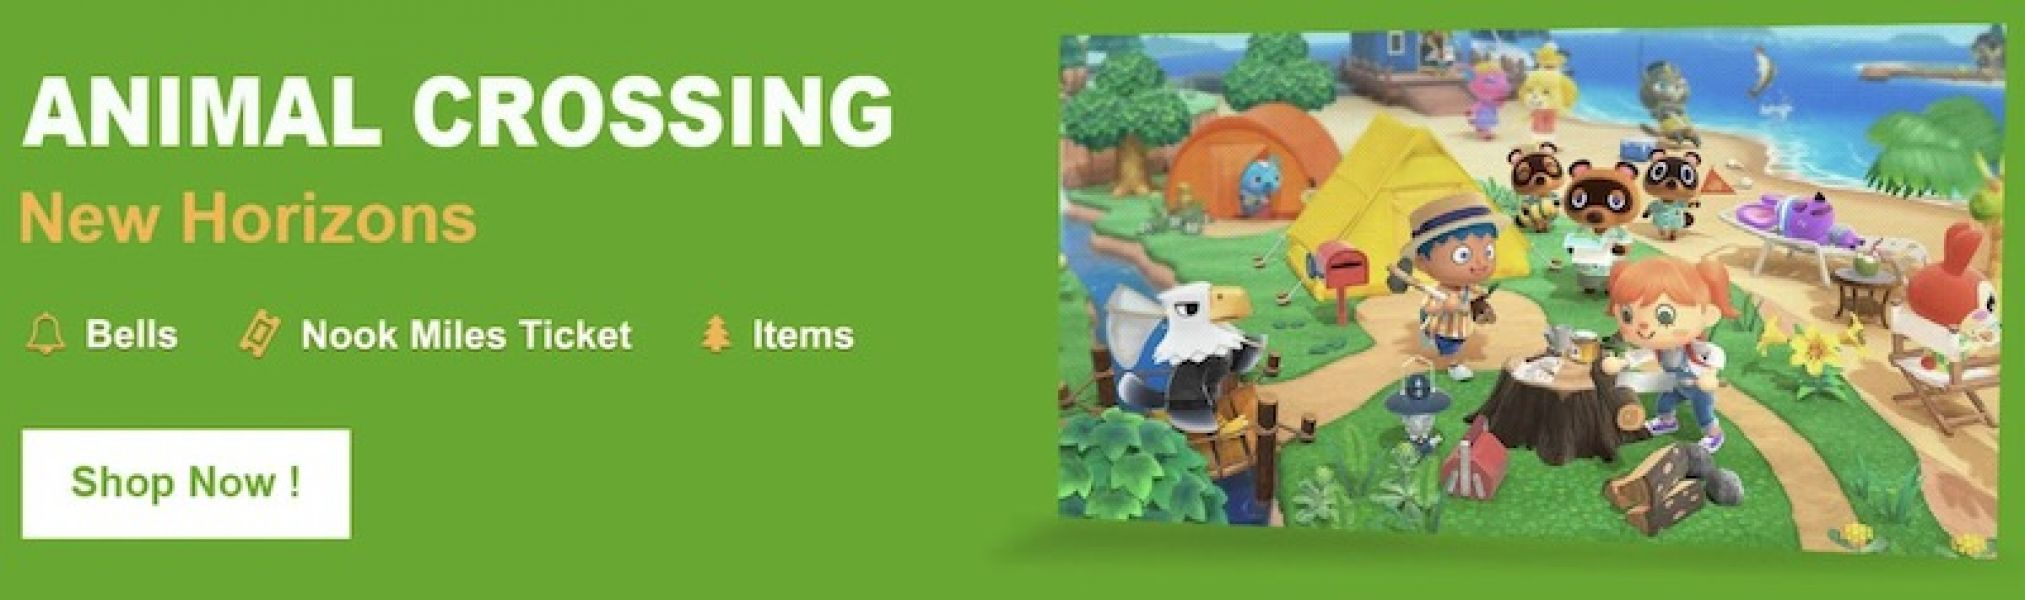 Buy Animal Crossing New Horizons Bells, Nook Miles and Items